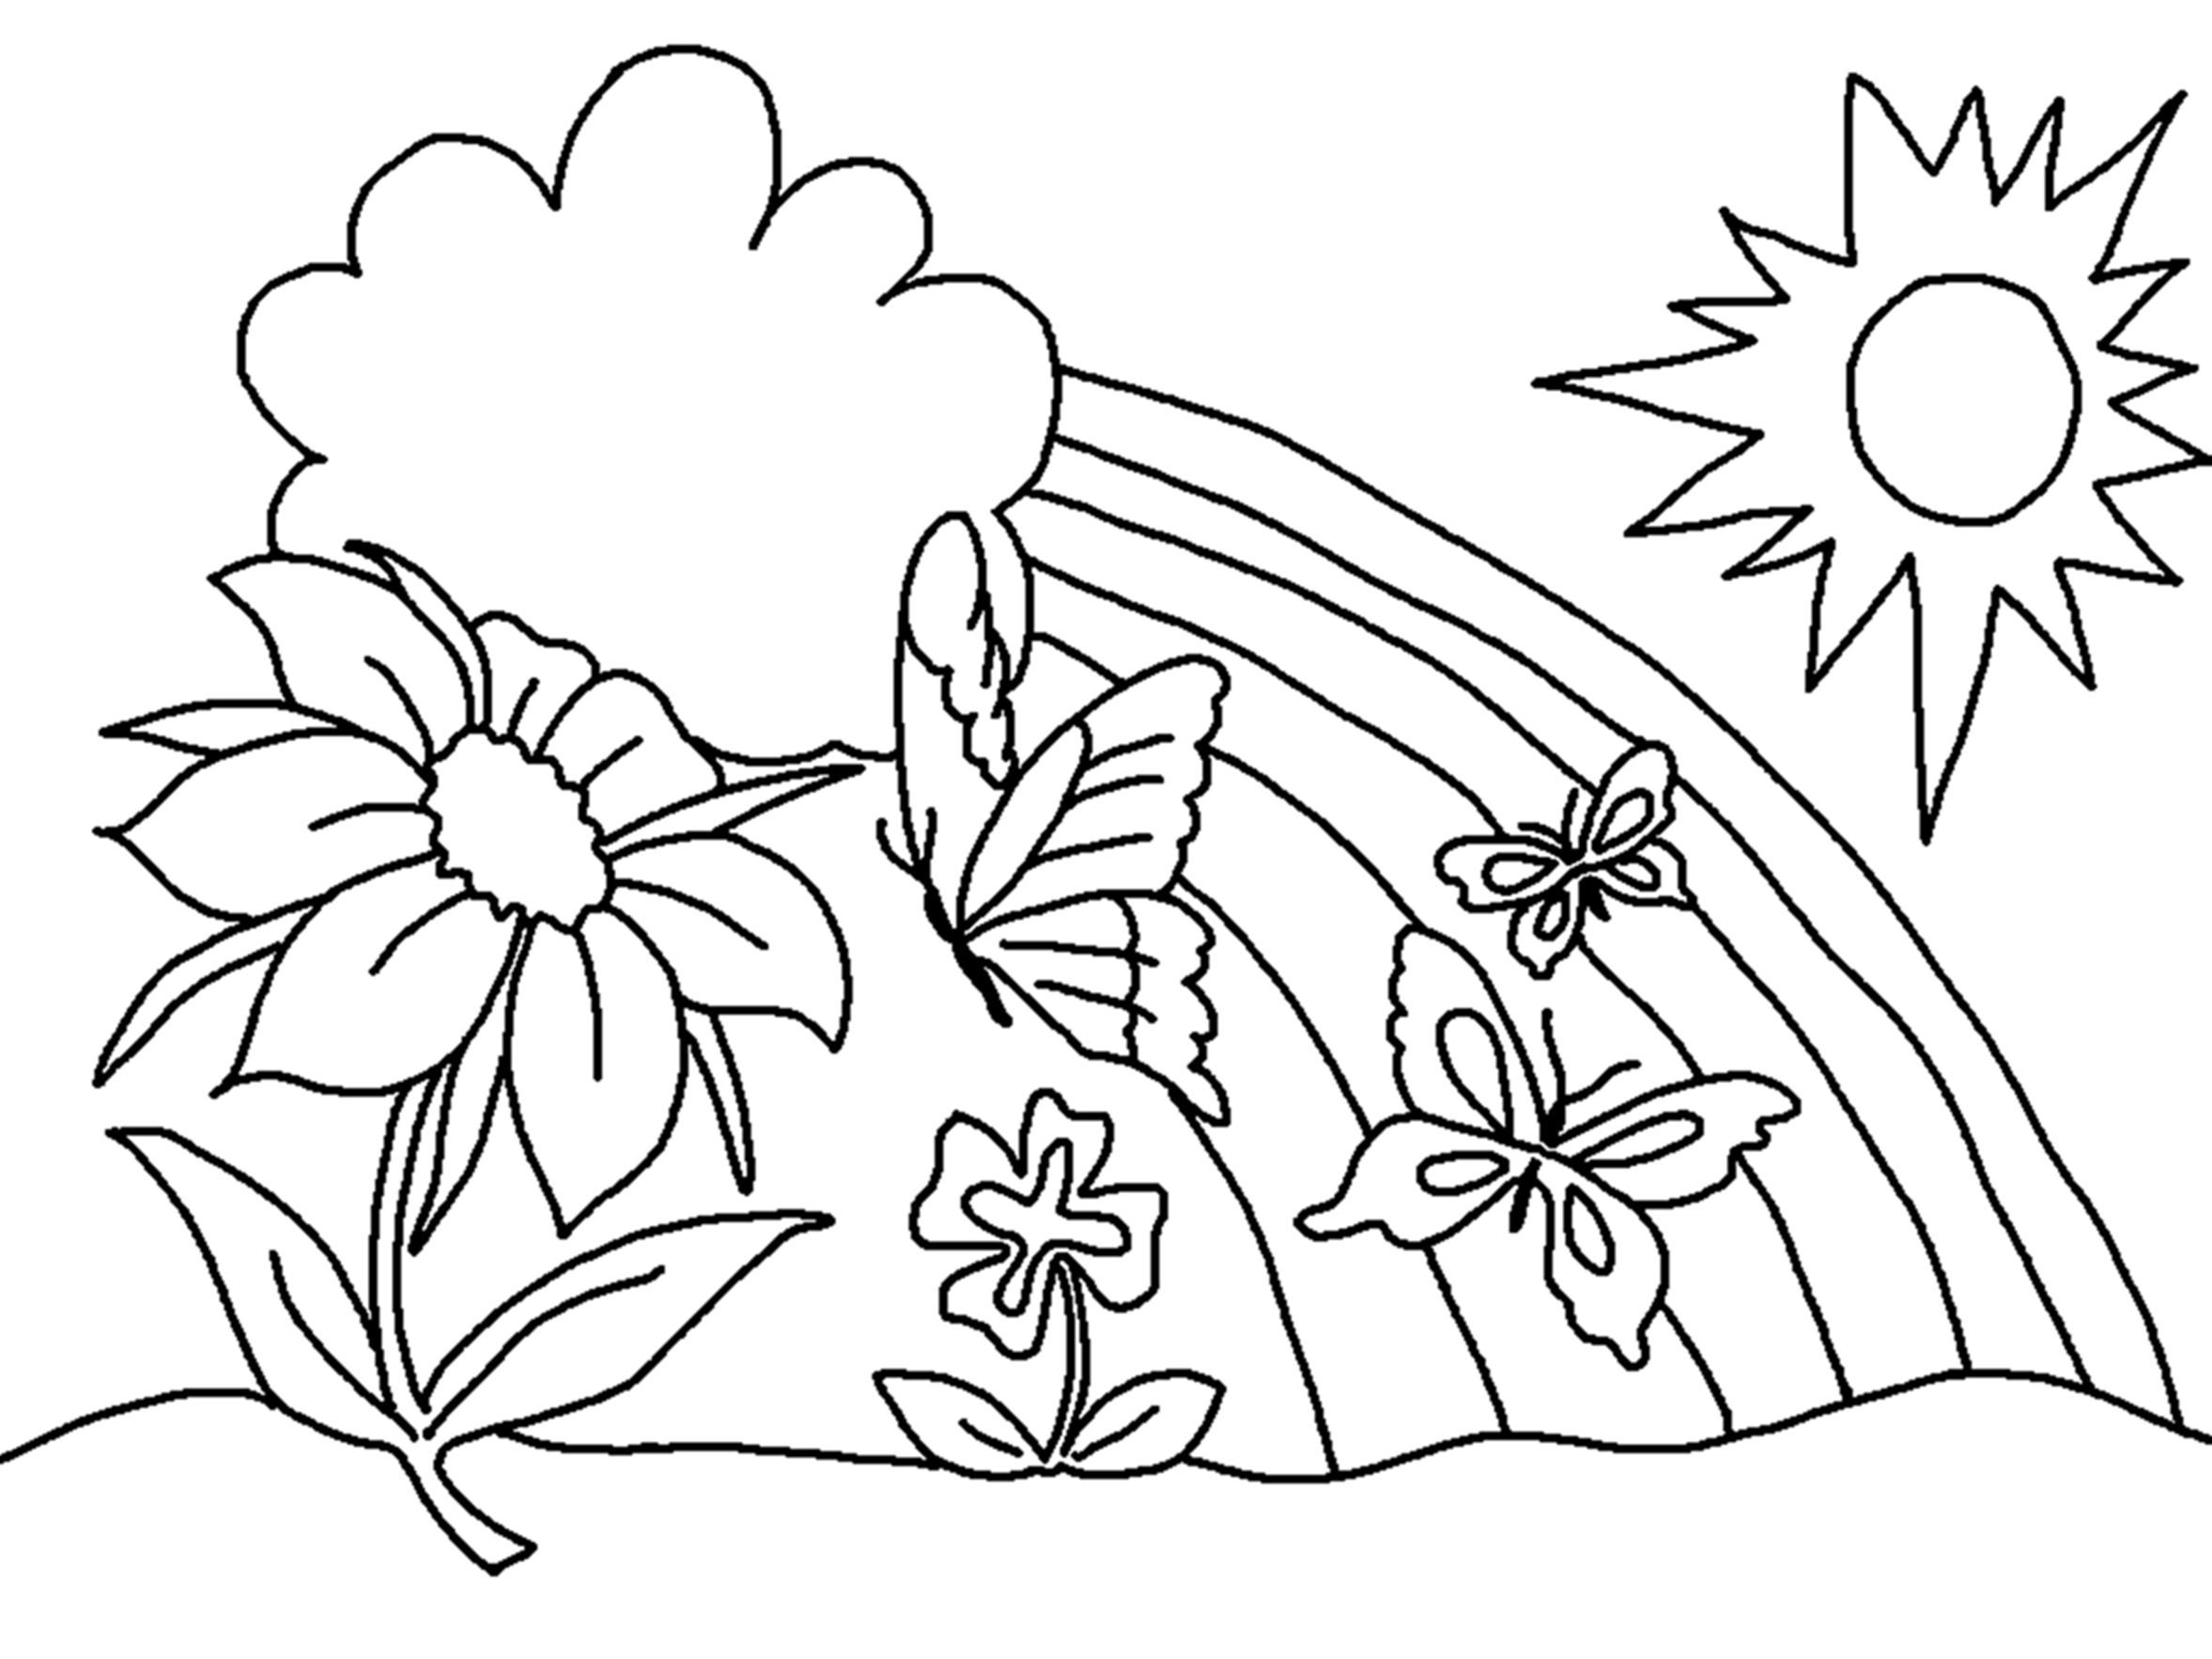 Free Downloadable Coloring Pages For Toddlers Coloring Pages